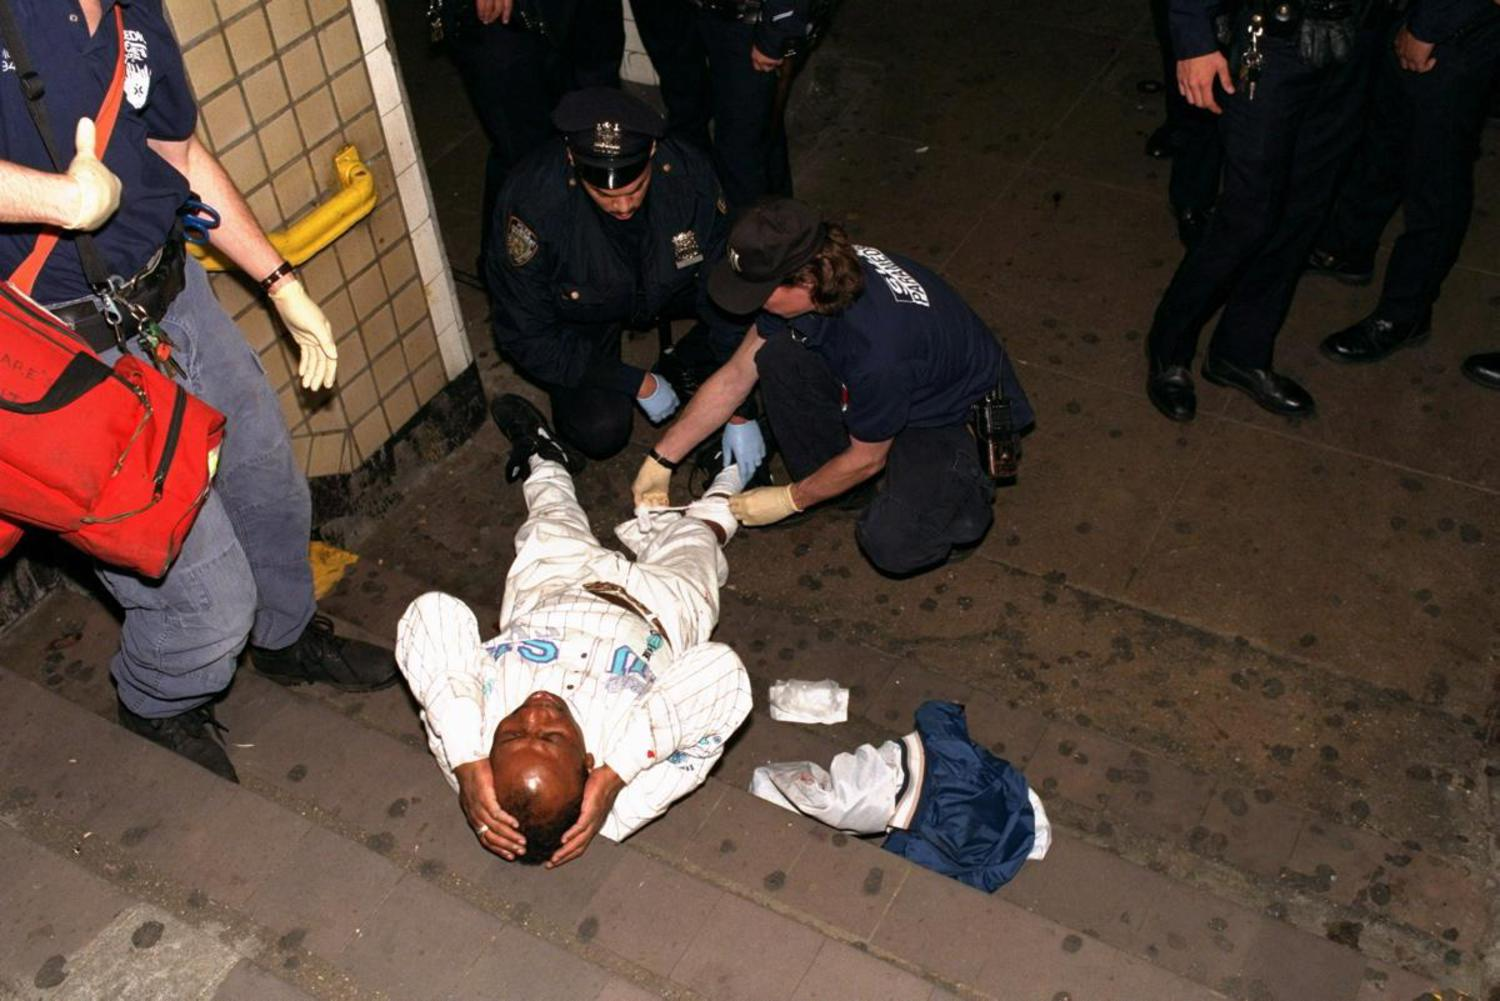 1990's: One of two shooting victims is treated by paramedics at the 34th St. and 8th Avenue subway station following a violent 1996 incident.